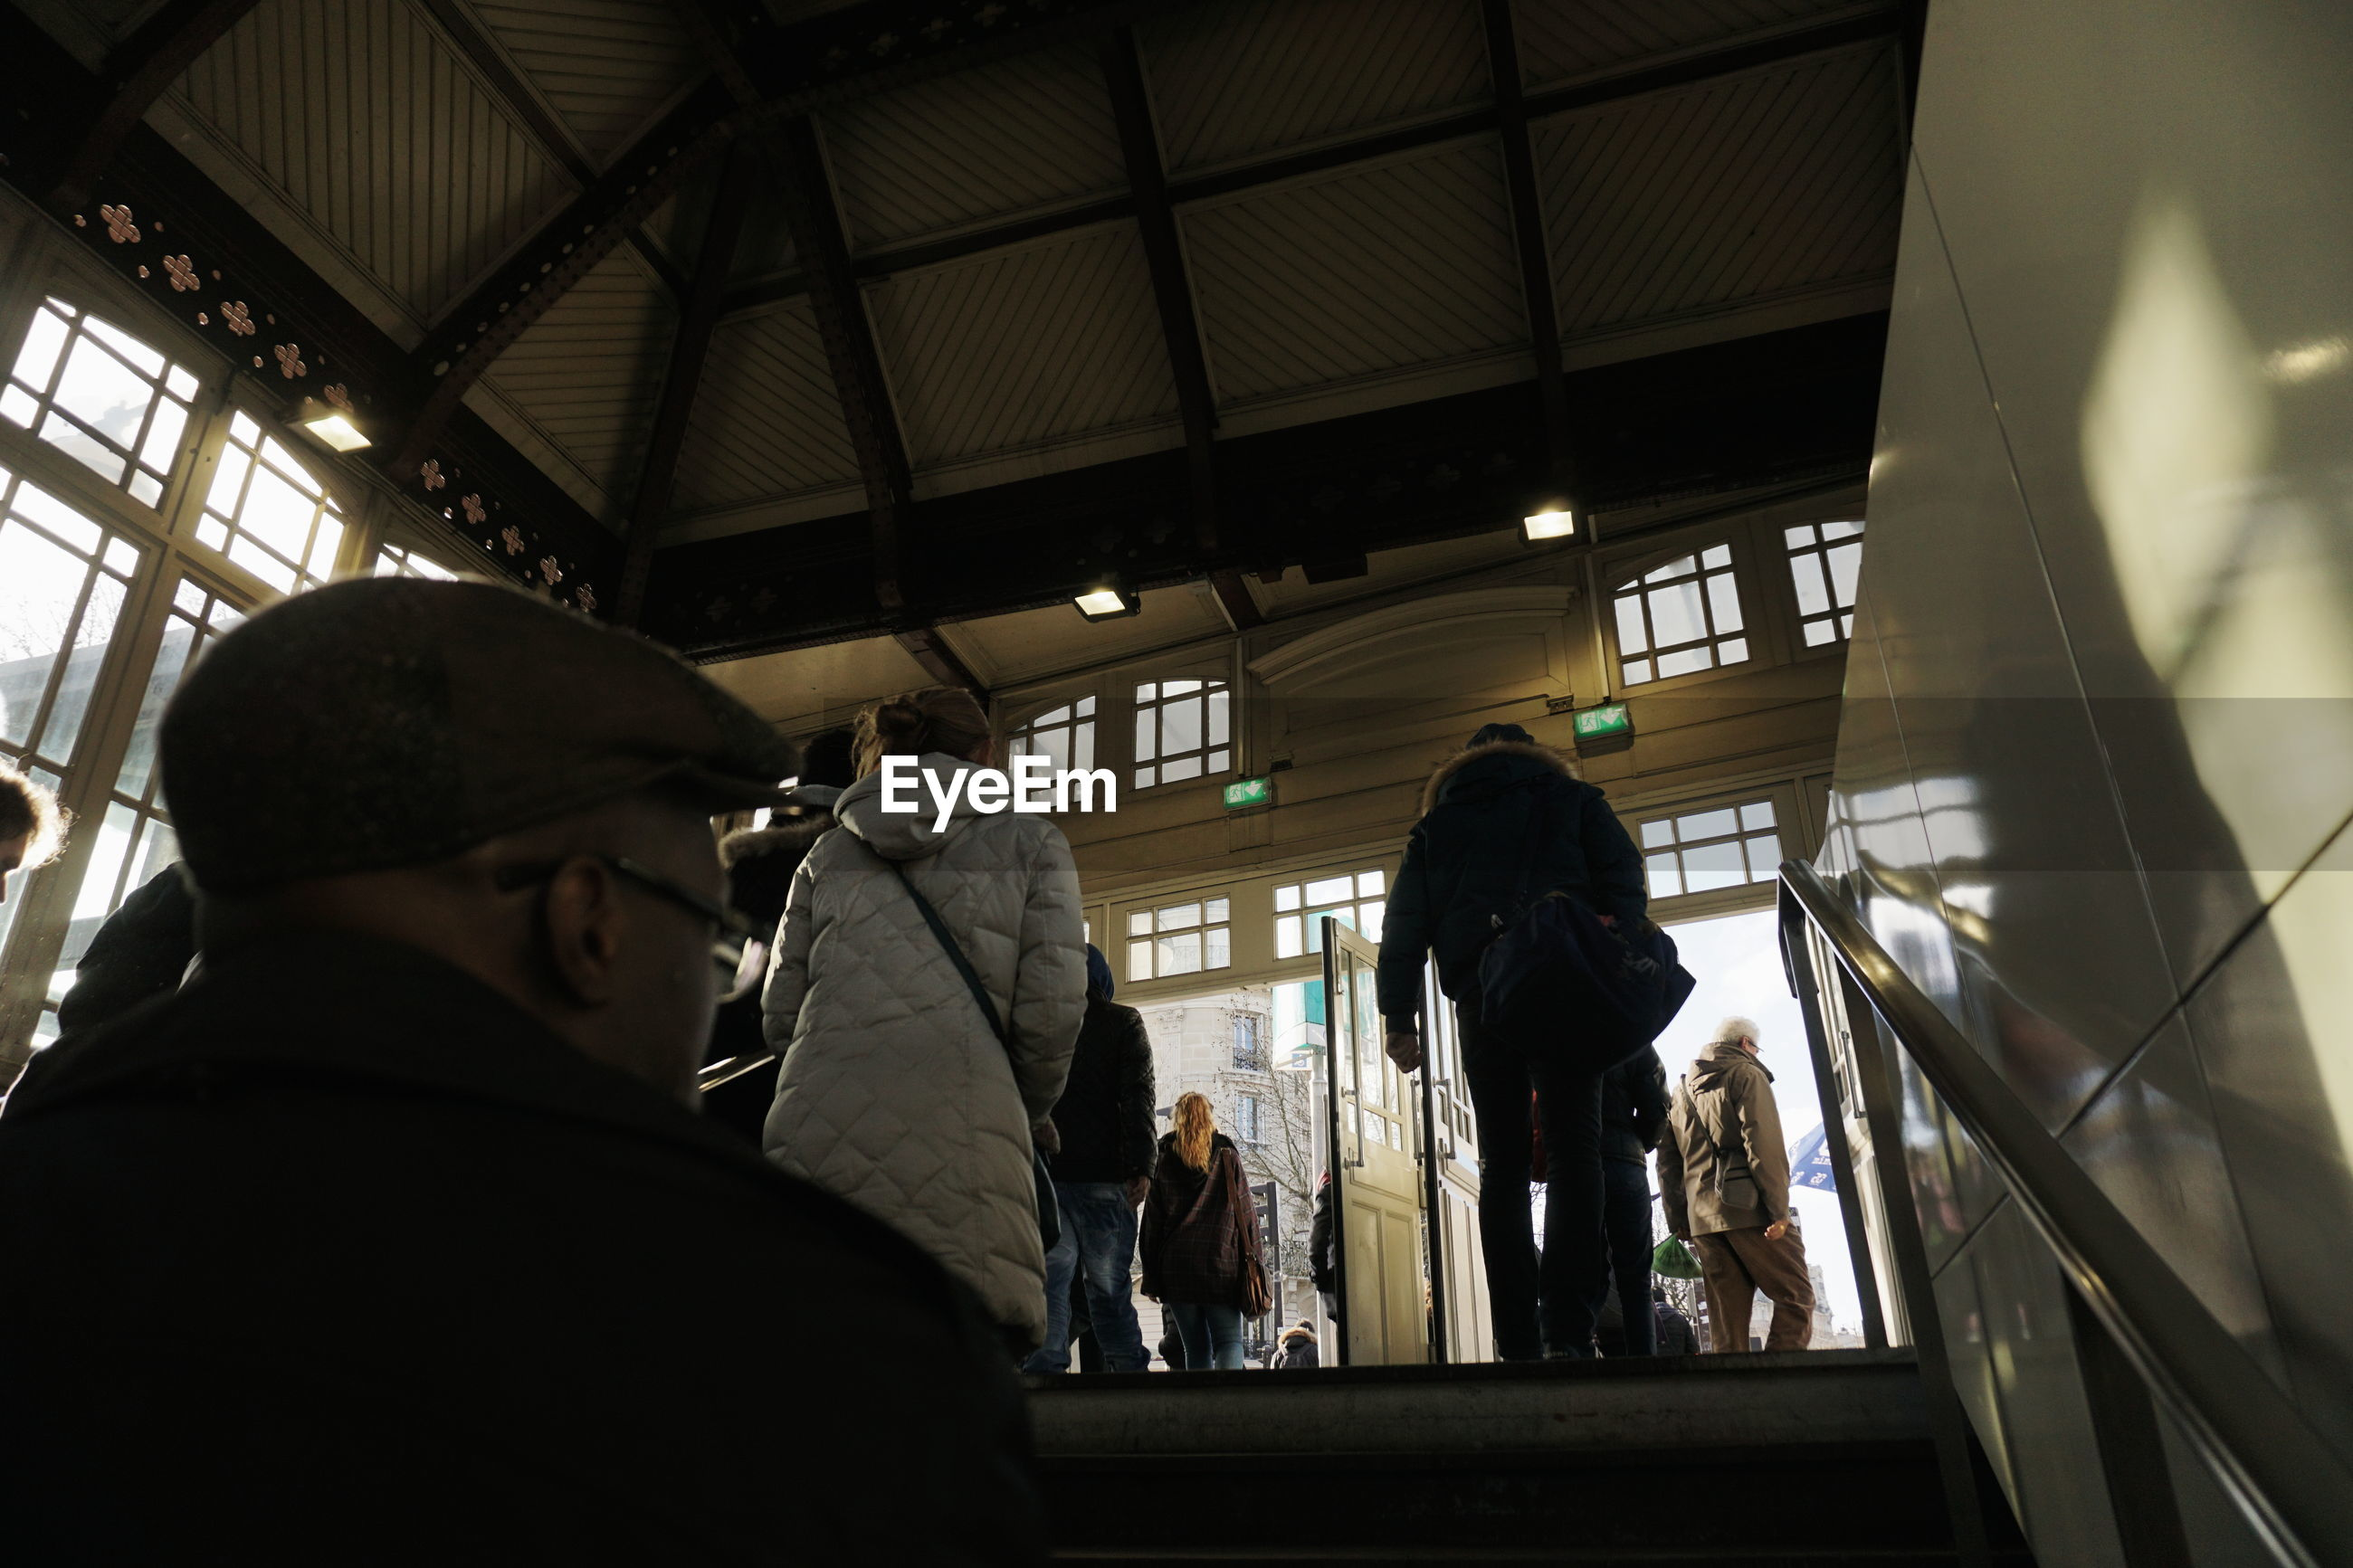 indoors, lifestyles, men, leisure activity, person, rear view, casual clothing, standing, photographing, built structure, architecture, togetherness, technology, photography themes, full length, three quarter length, travel